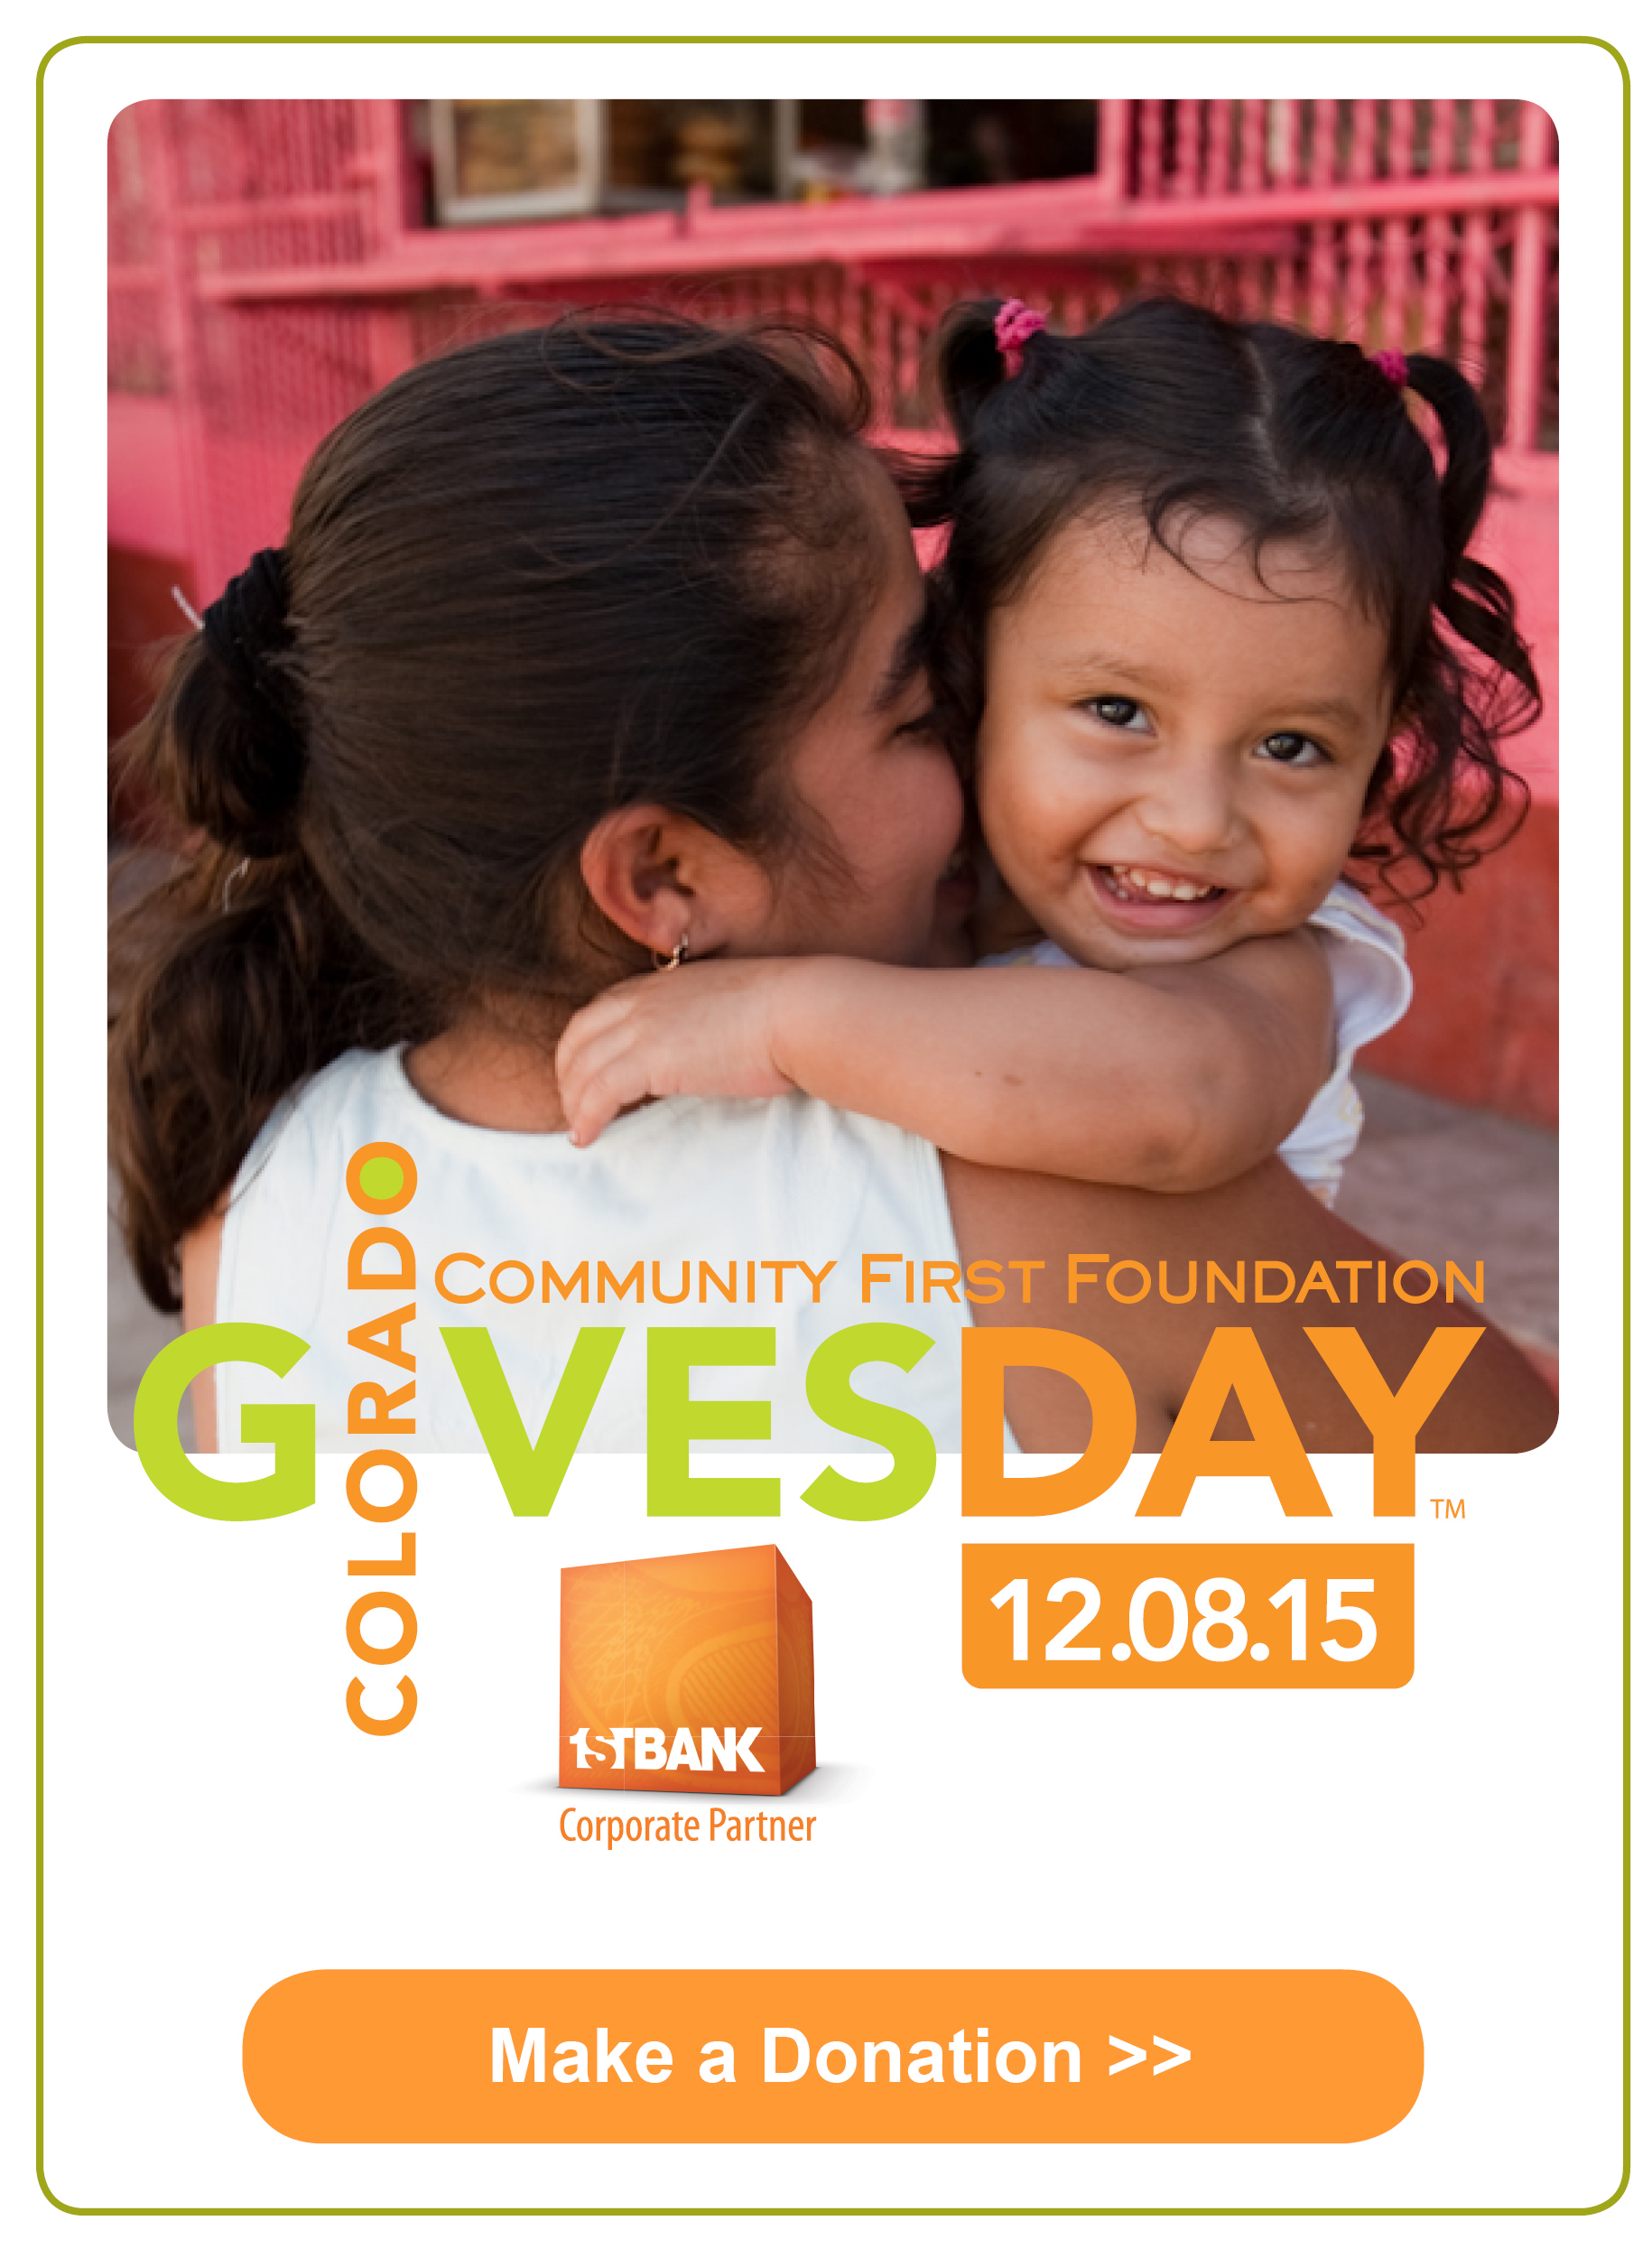 CO Gives Day 2015